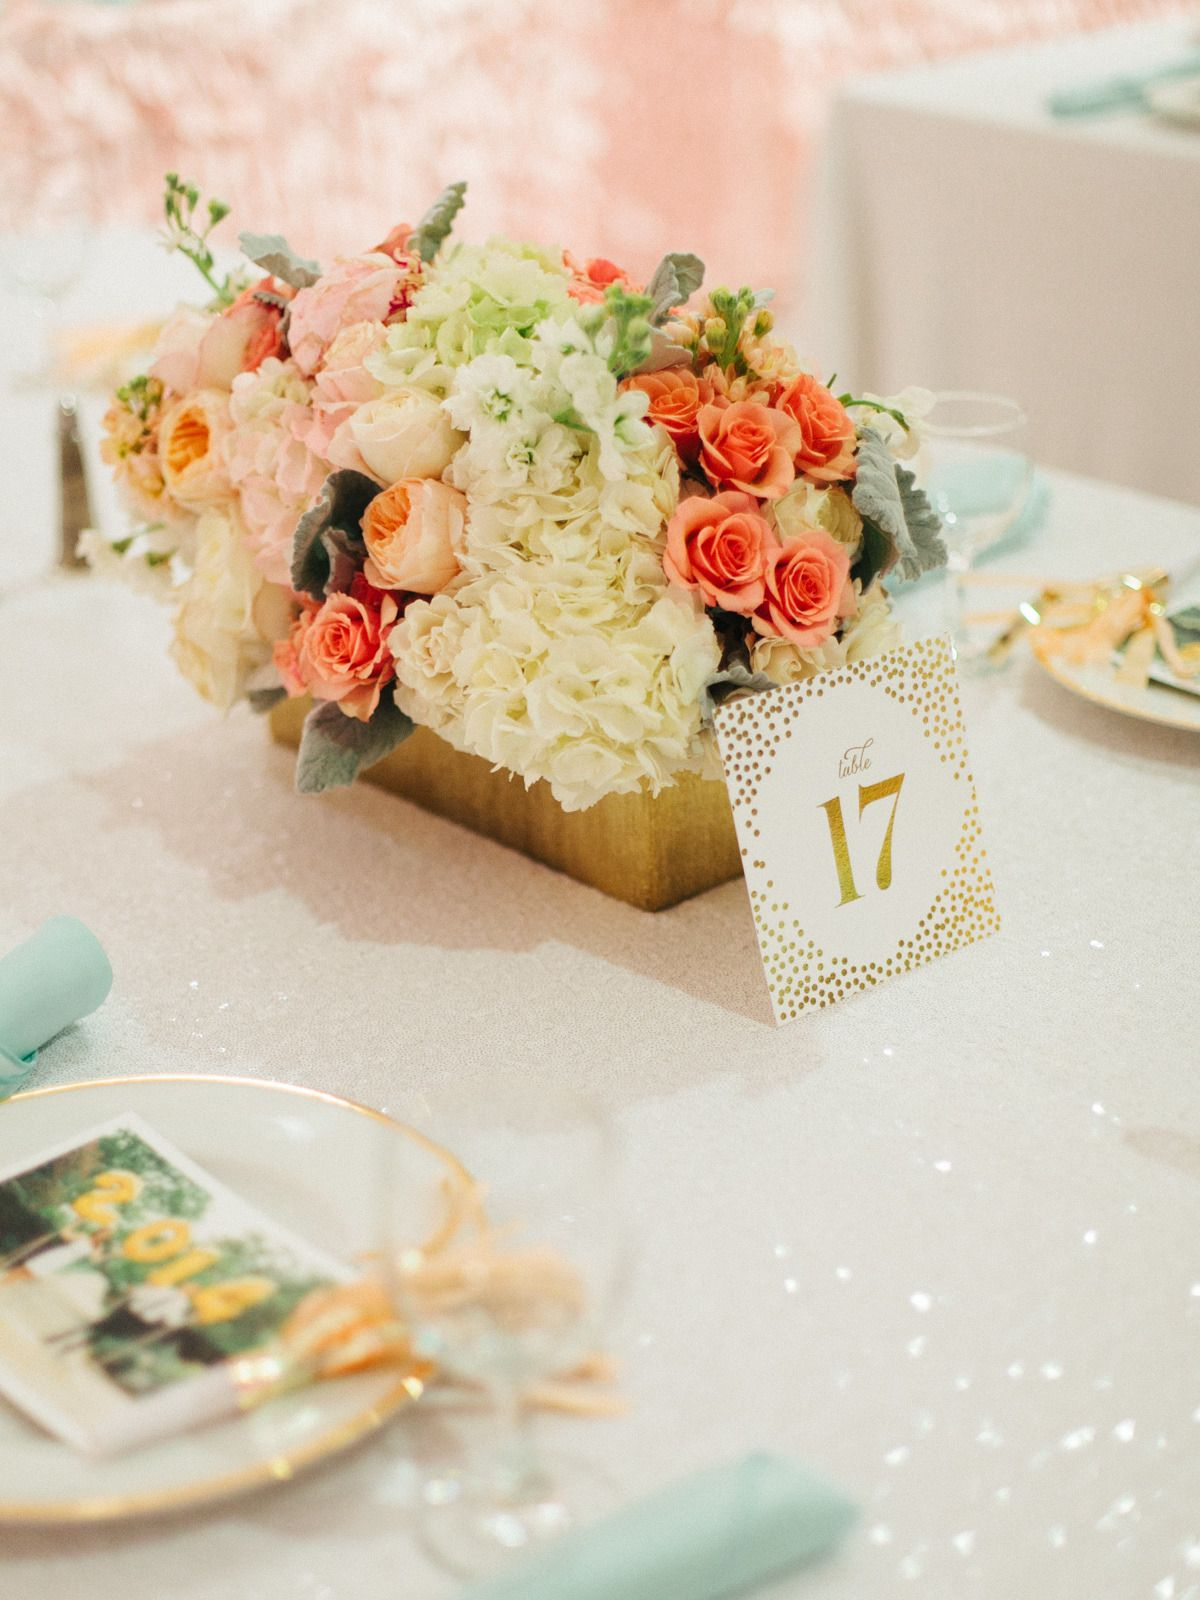 Sparkly New Year's Eve Wedding | Tall wedding centerpieces ...